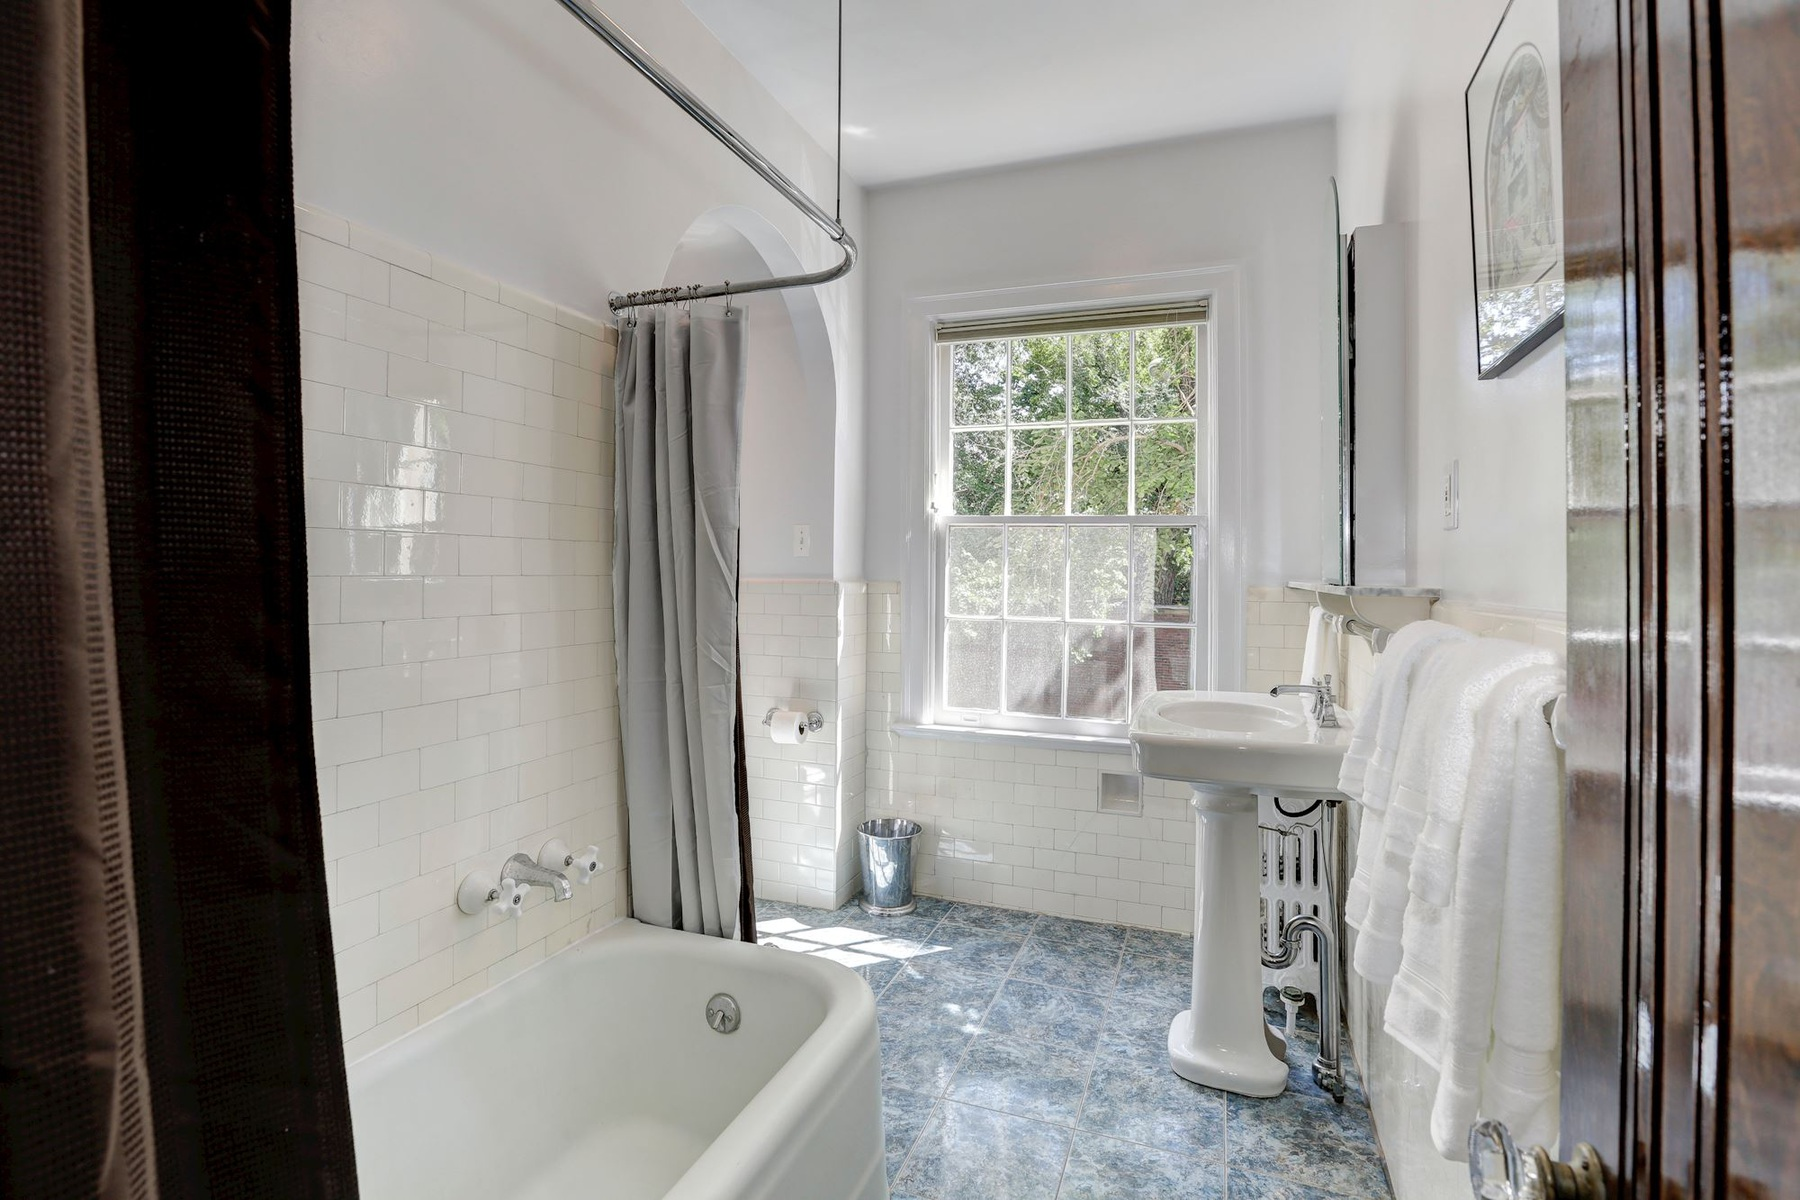 Additional photo for property listing at 1661 Crescent Place Nw 210, Washington  Washington, District Of Columbia 20009 United States